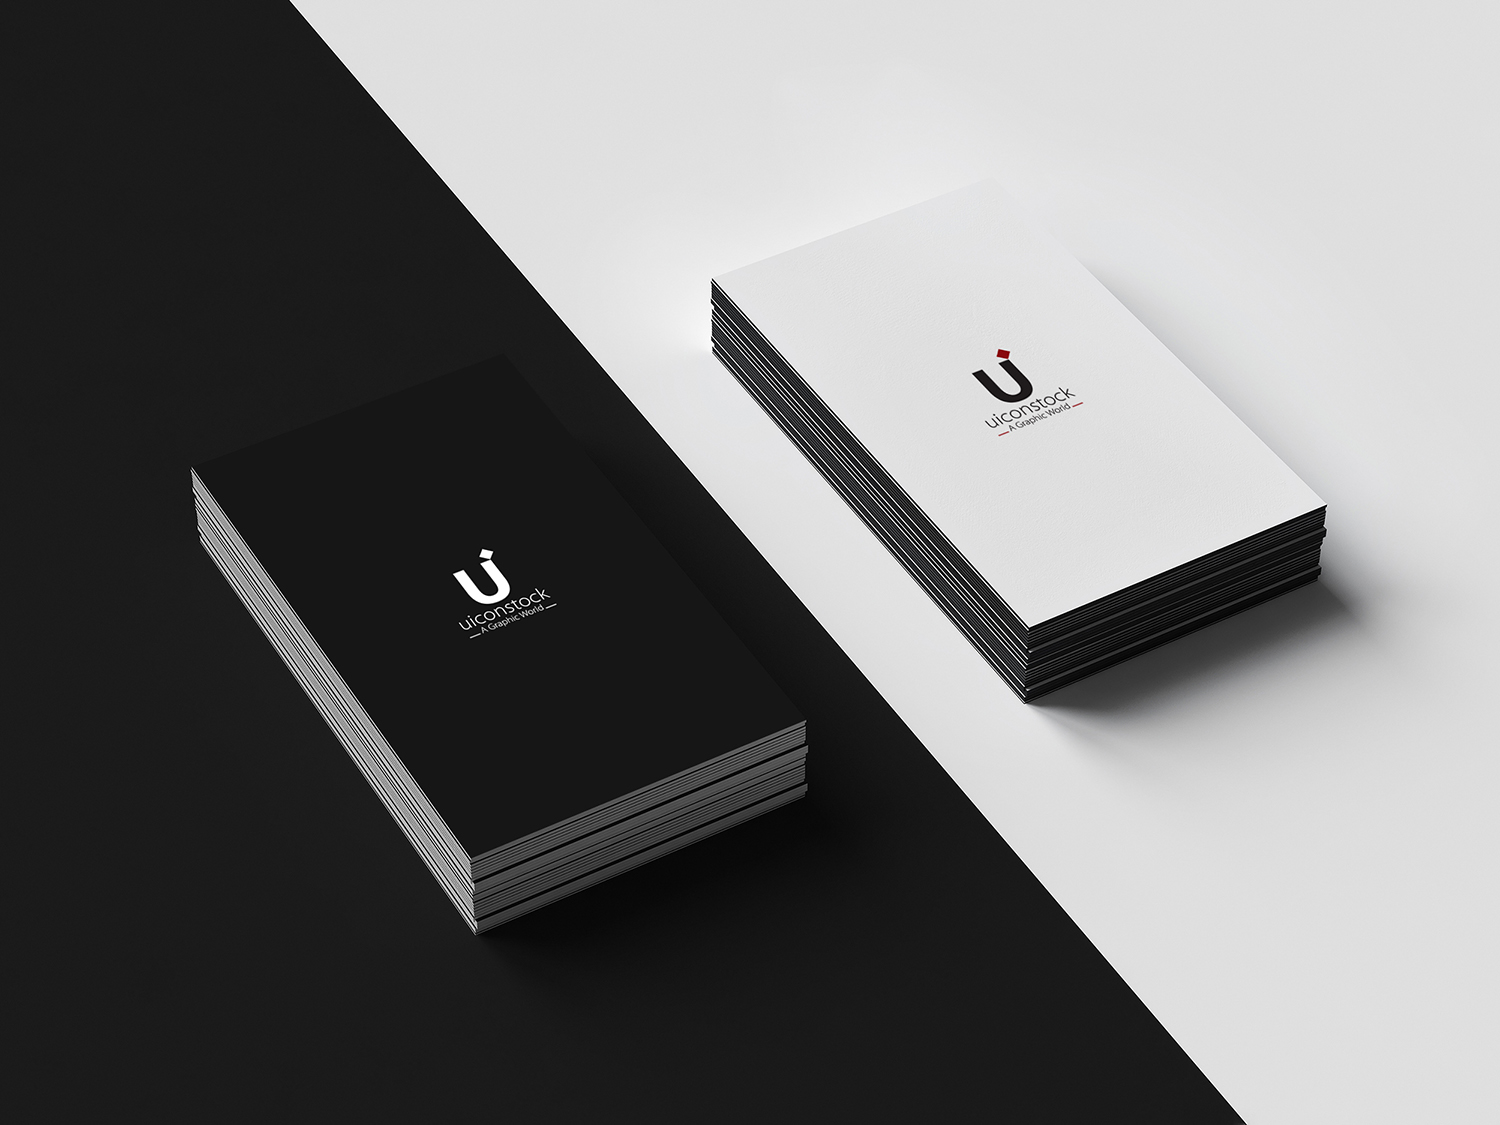 Free-Flato-Business-Card-Mockup-Psd.jpg